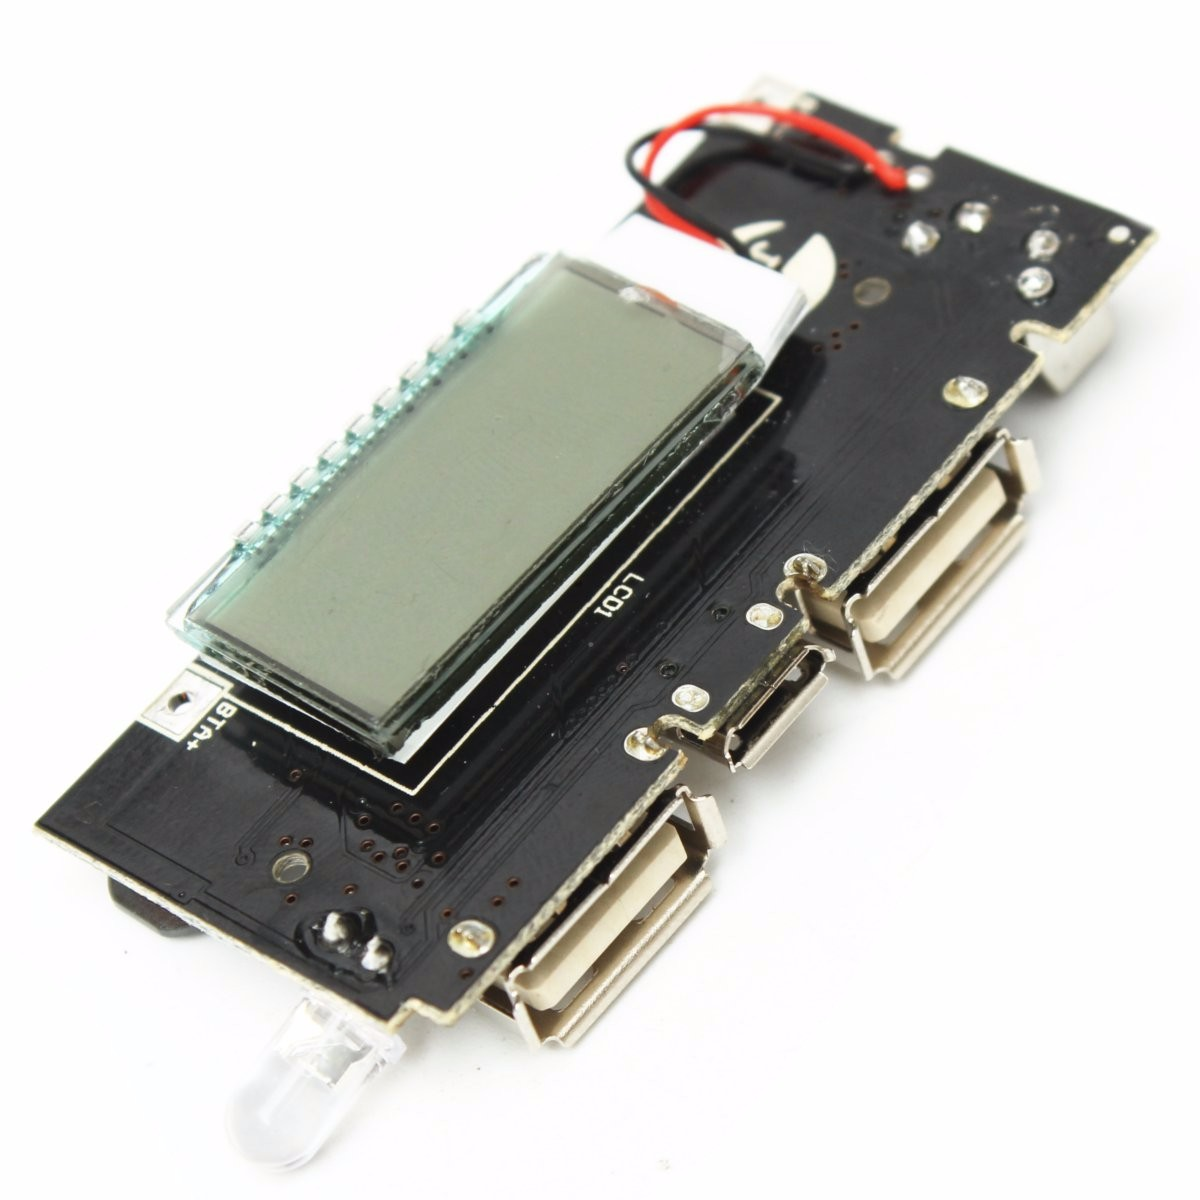 New Dual USB 5V 1A 2.1A Mobile Power Bank 18650 Battery Charger PCB Power Module Accessories For Phone DIY